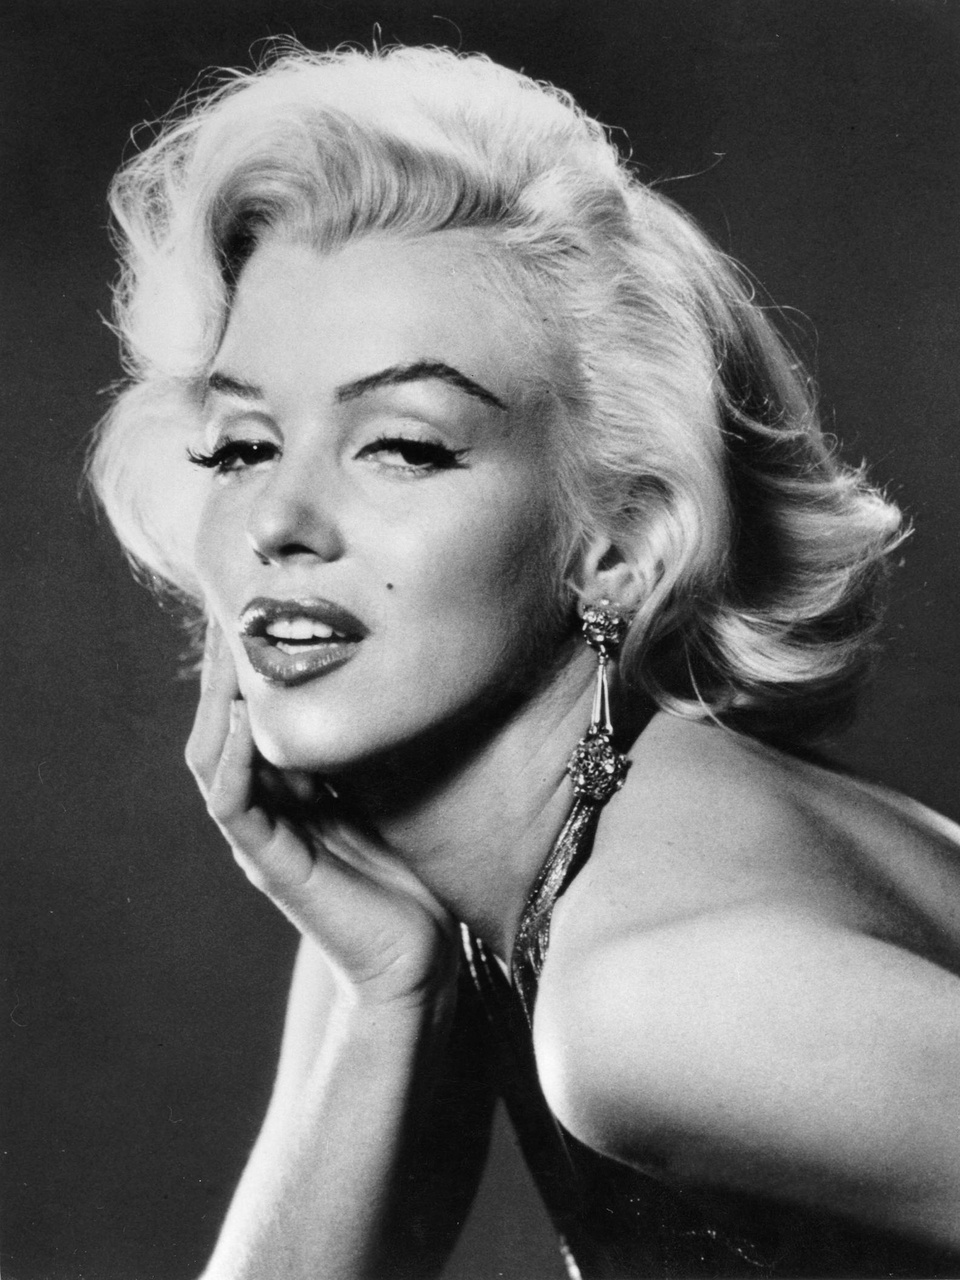 Wallpapers and Latest News From Facebook: 3 Marilyn Monroe ...